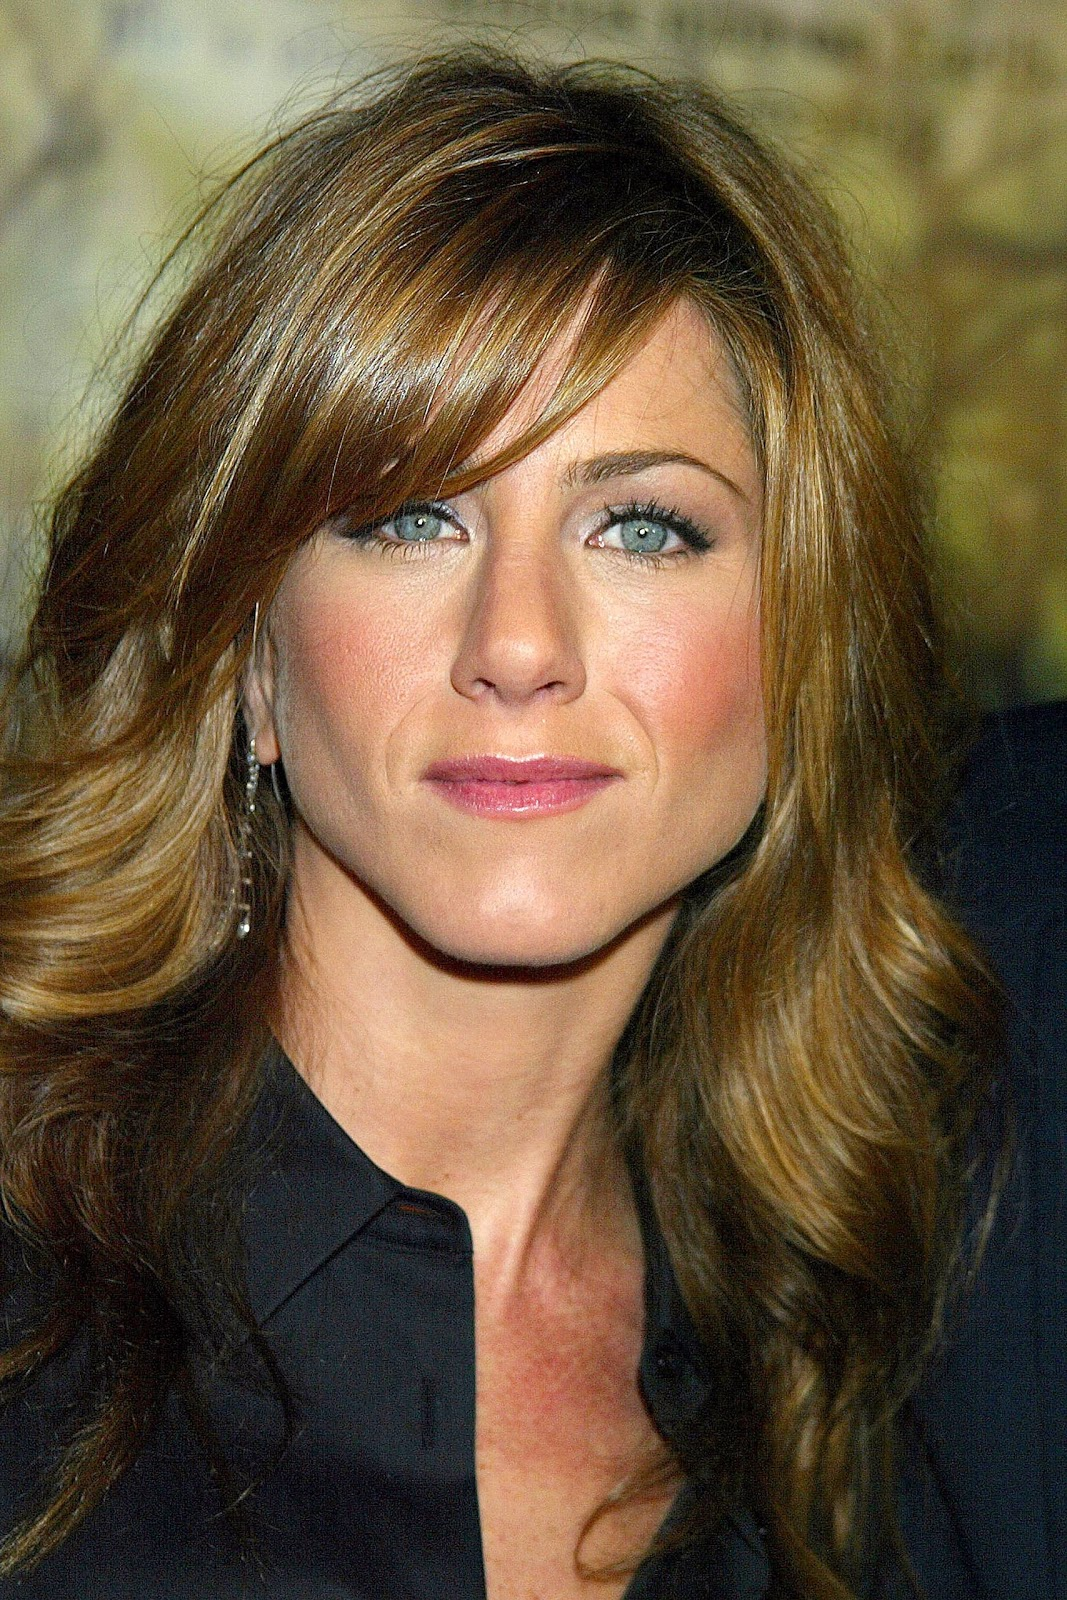 http://1.bp.blogspot.com/-Mp0Kgg-05UA/TlAD0T8RTlI/AAAAAAAAAOU/cLO07DhD0z0/s1600/Jennifer-Aniston-movie-pics-pictures-photos-images-adam-bio%2B%2525281%252529.jpg